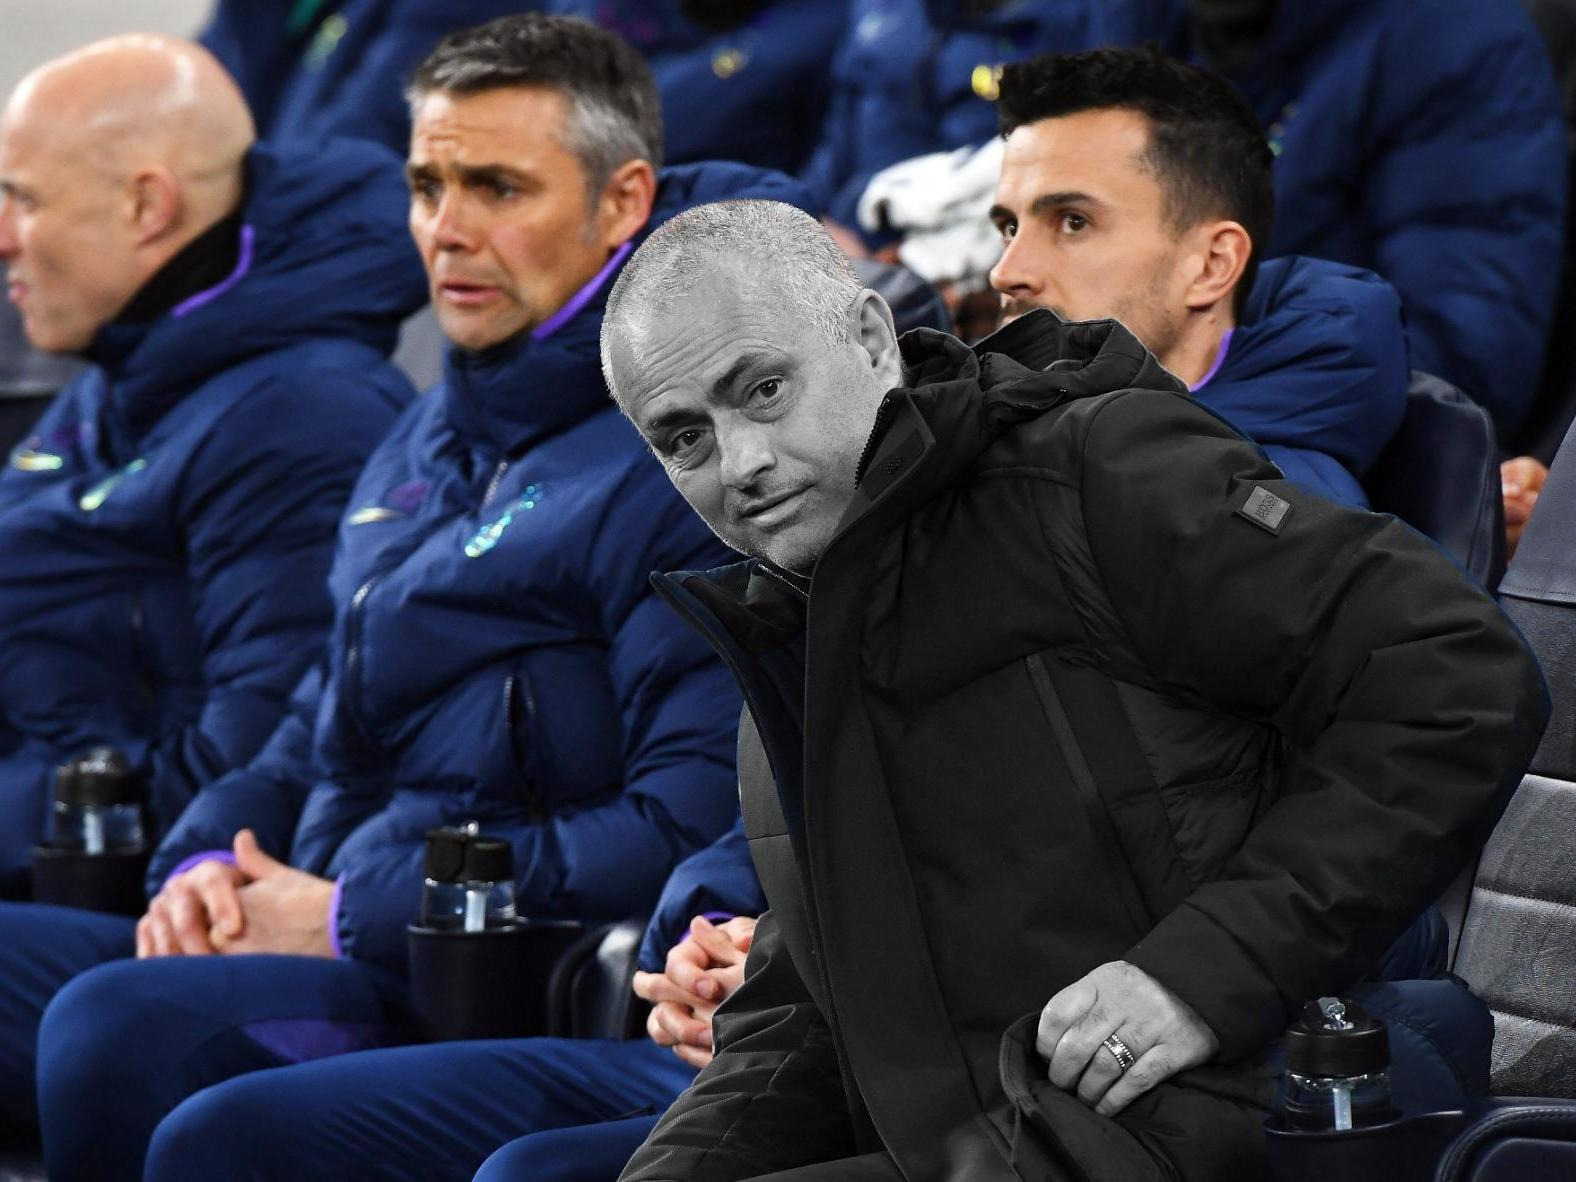 We all expected Chelsea vs Tottenham to be a Jose Mourinho circus – but now it's more important than that